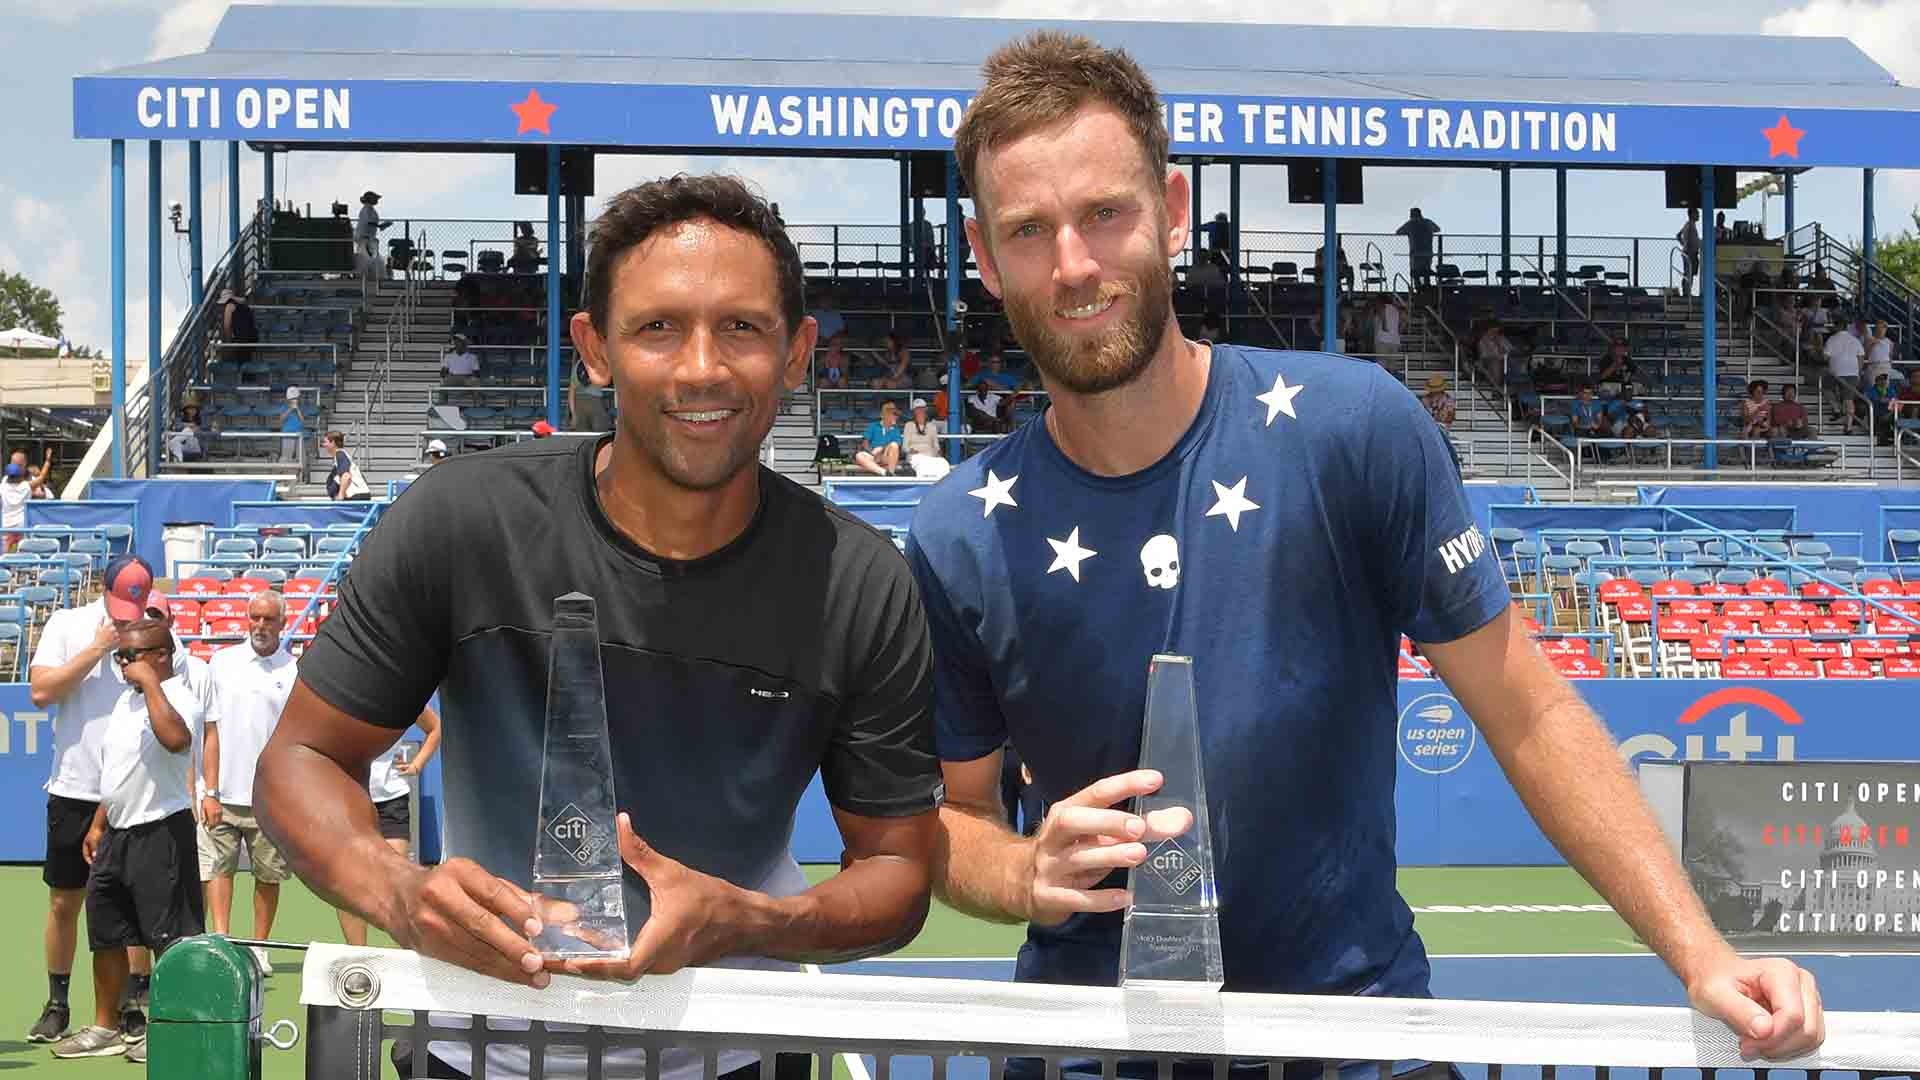 Two of Raven Klaasen and Michael Venus' three tour-level trophies have been claimed at ATP 500 events.